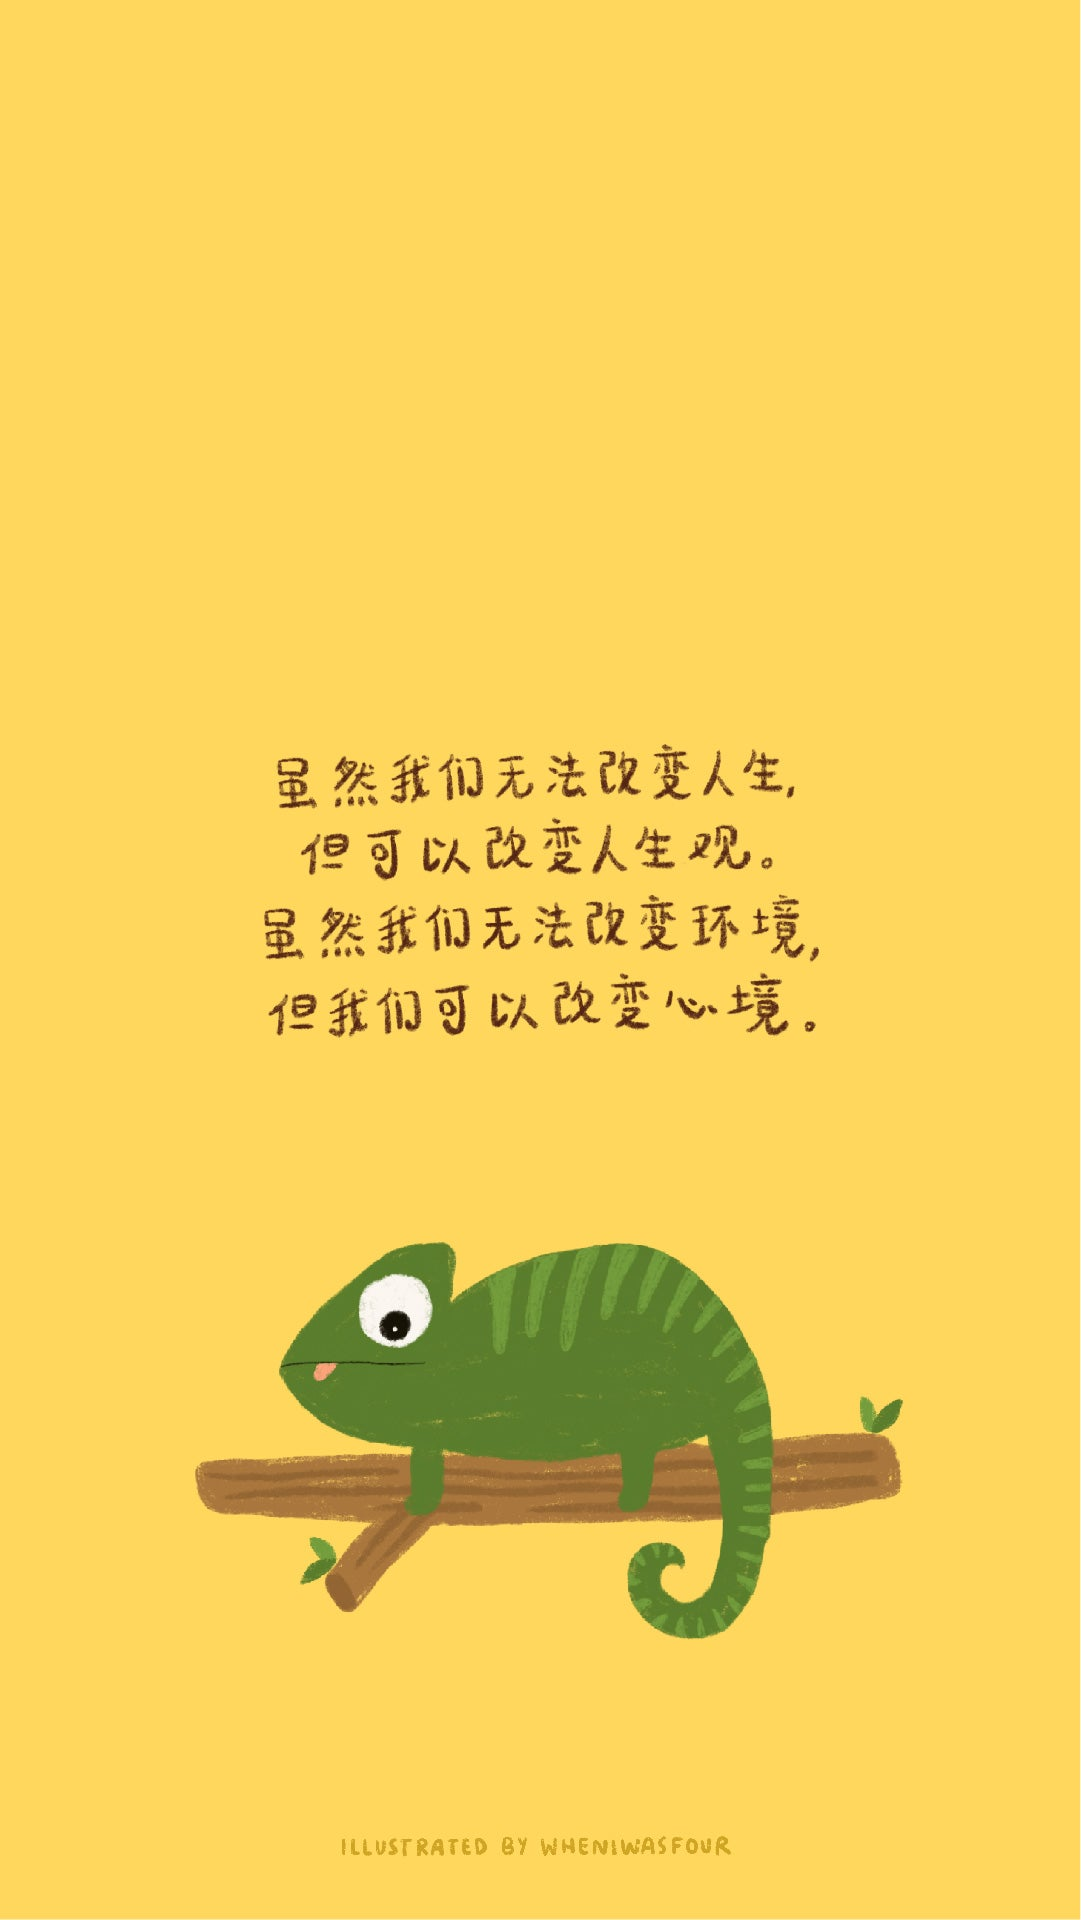 wallpaper with a digital illustration of a chameleon on a tree branch and a chinese quote about changing mindset and perspectives